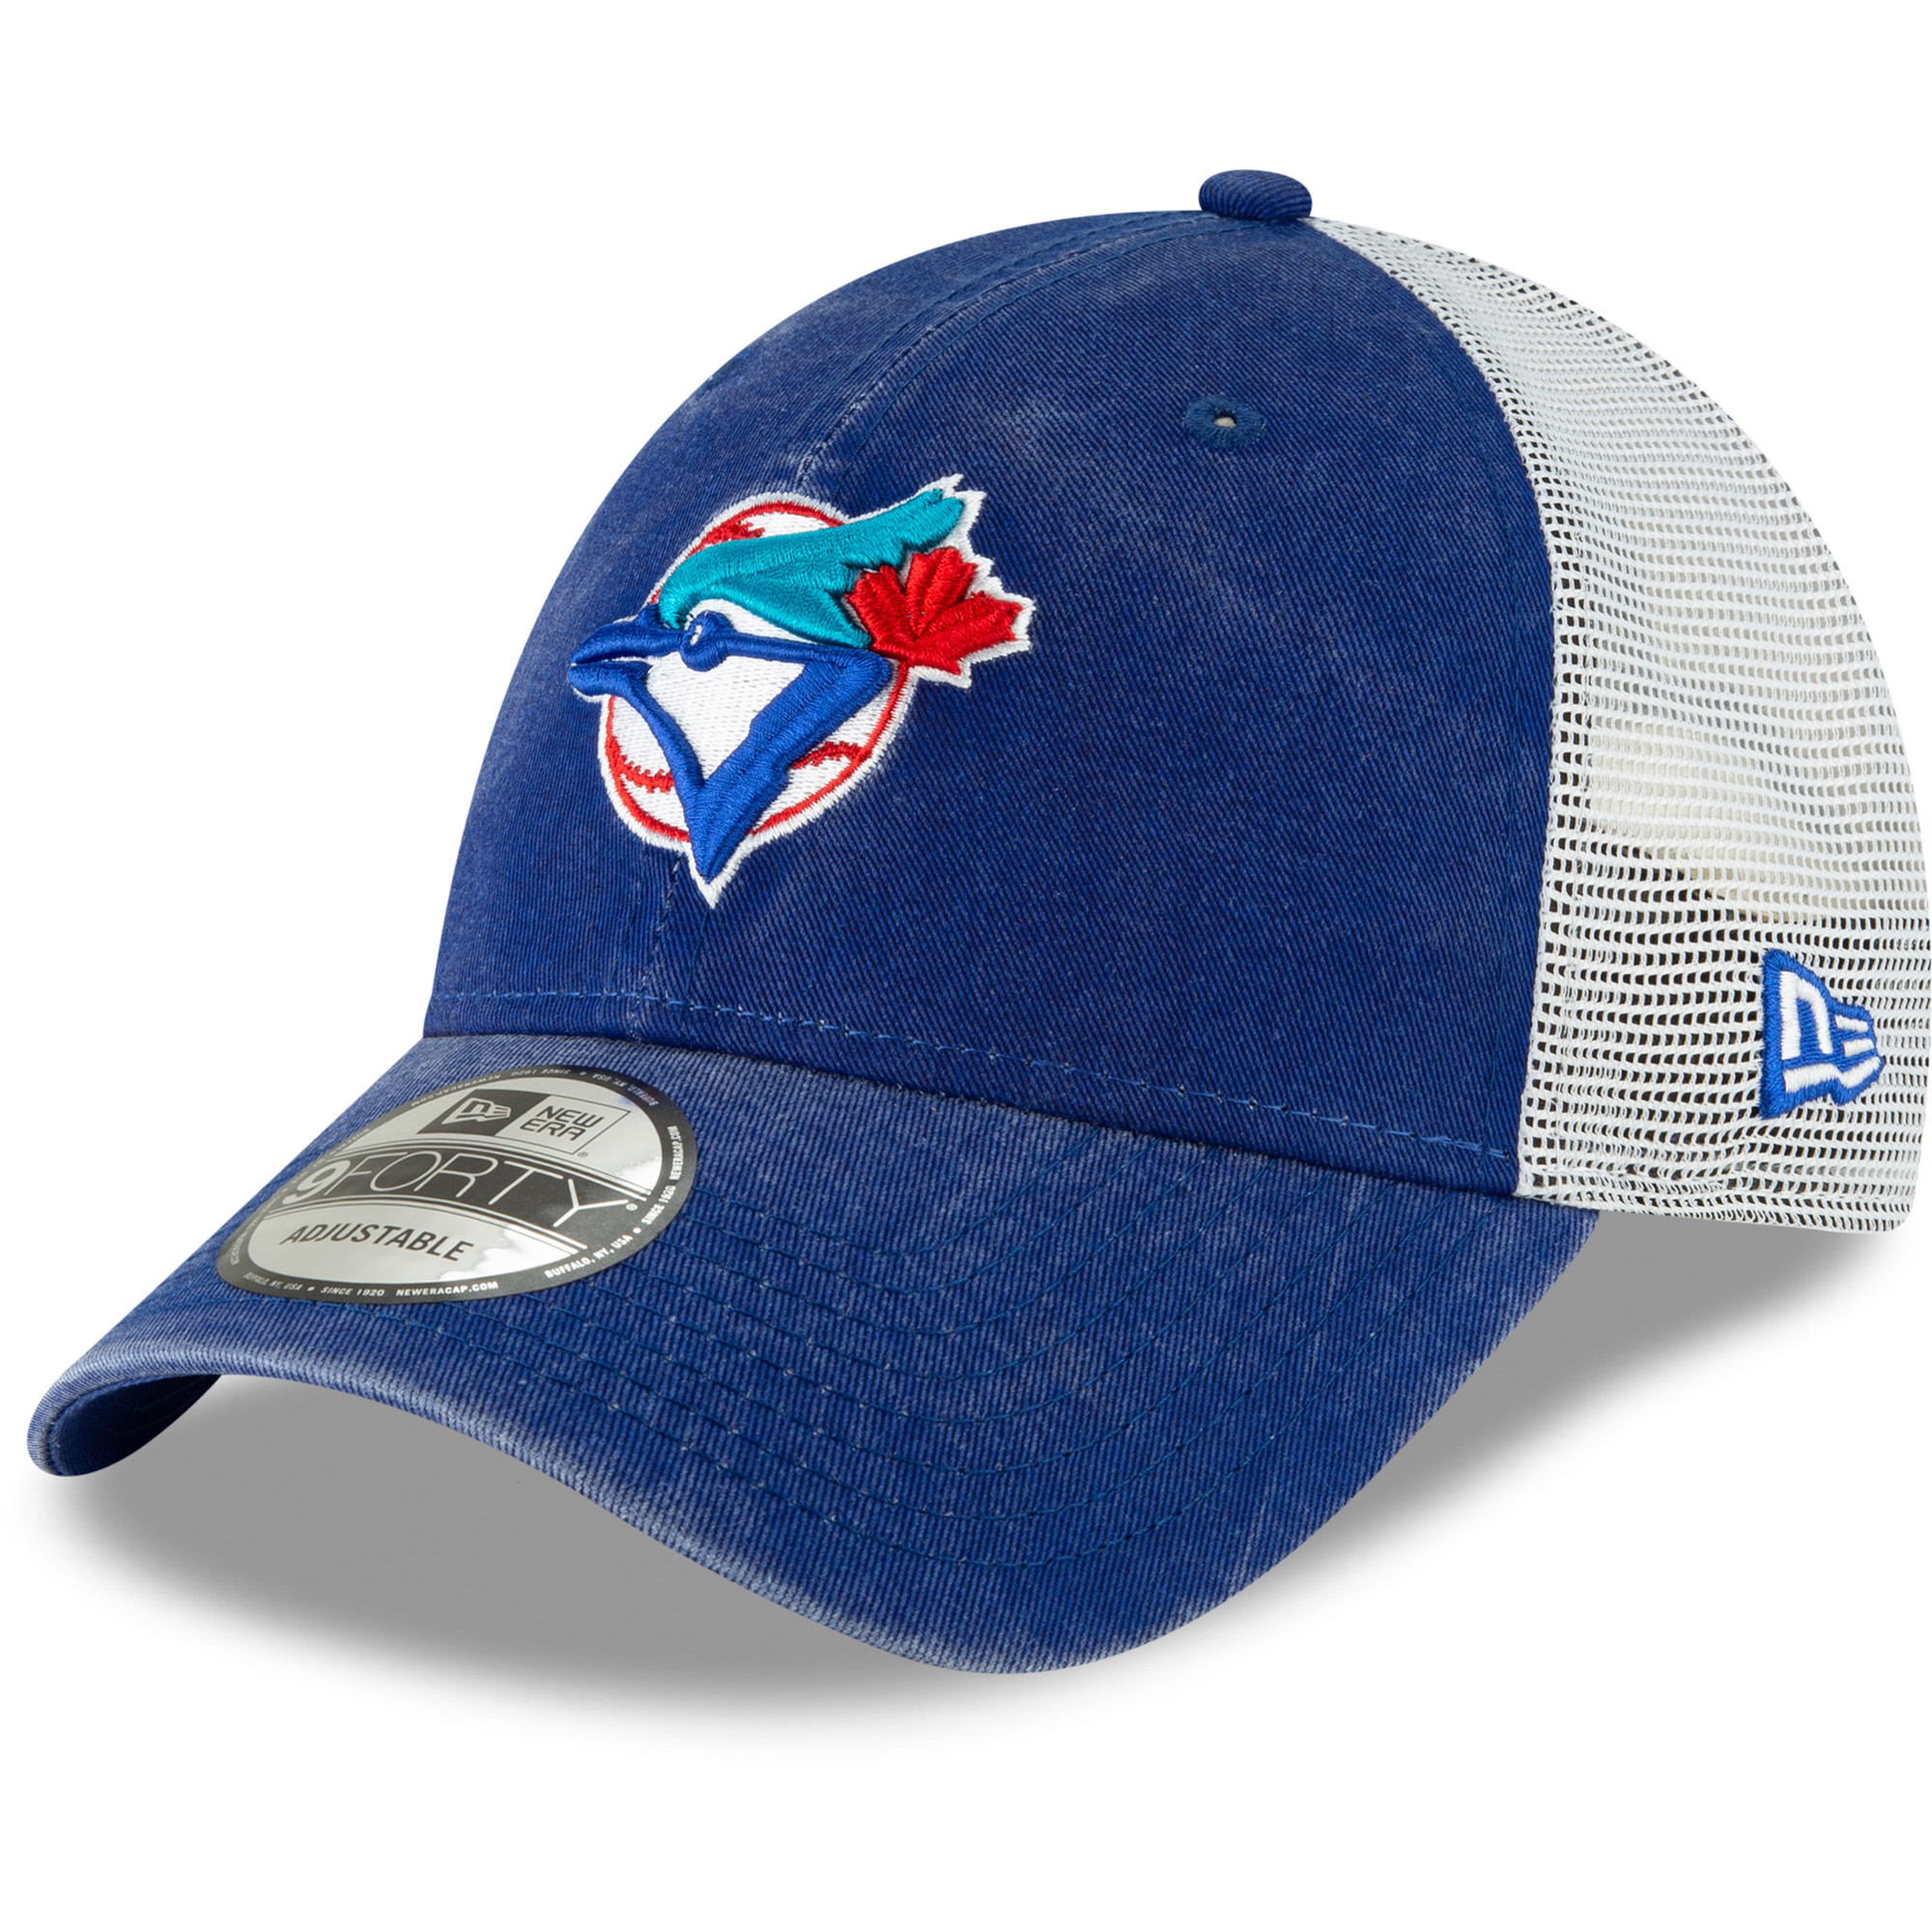 Toronto Blue Jays New Era 1977 Cooperstown Collection Trucker 9FORTY Adjustable Snapback Hat - Royal - OSFA